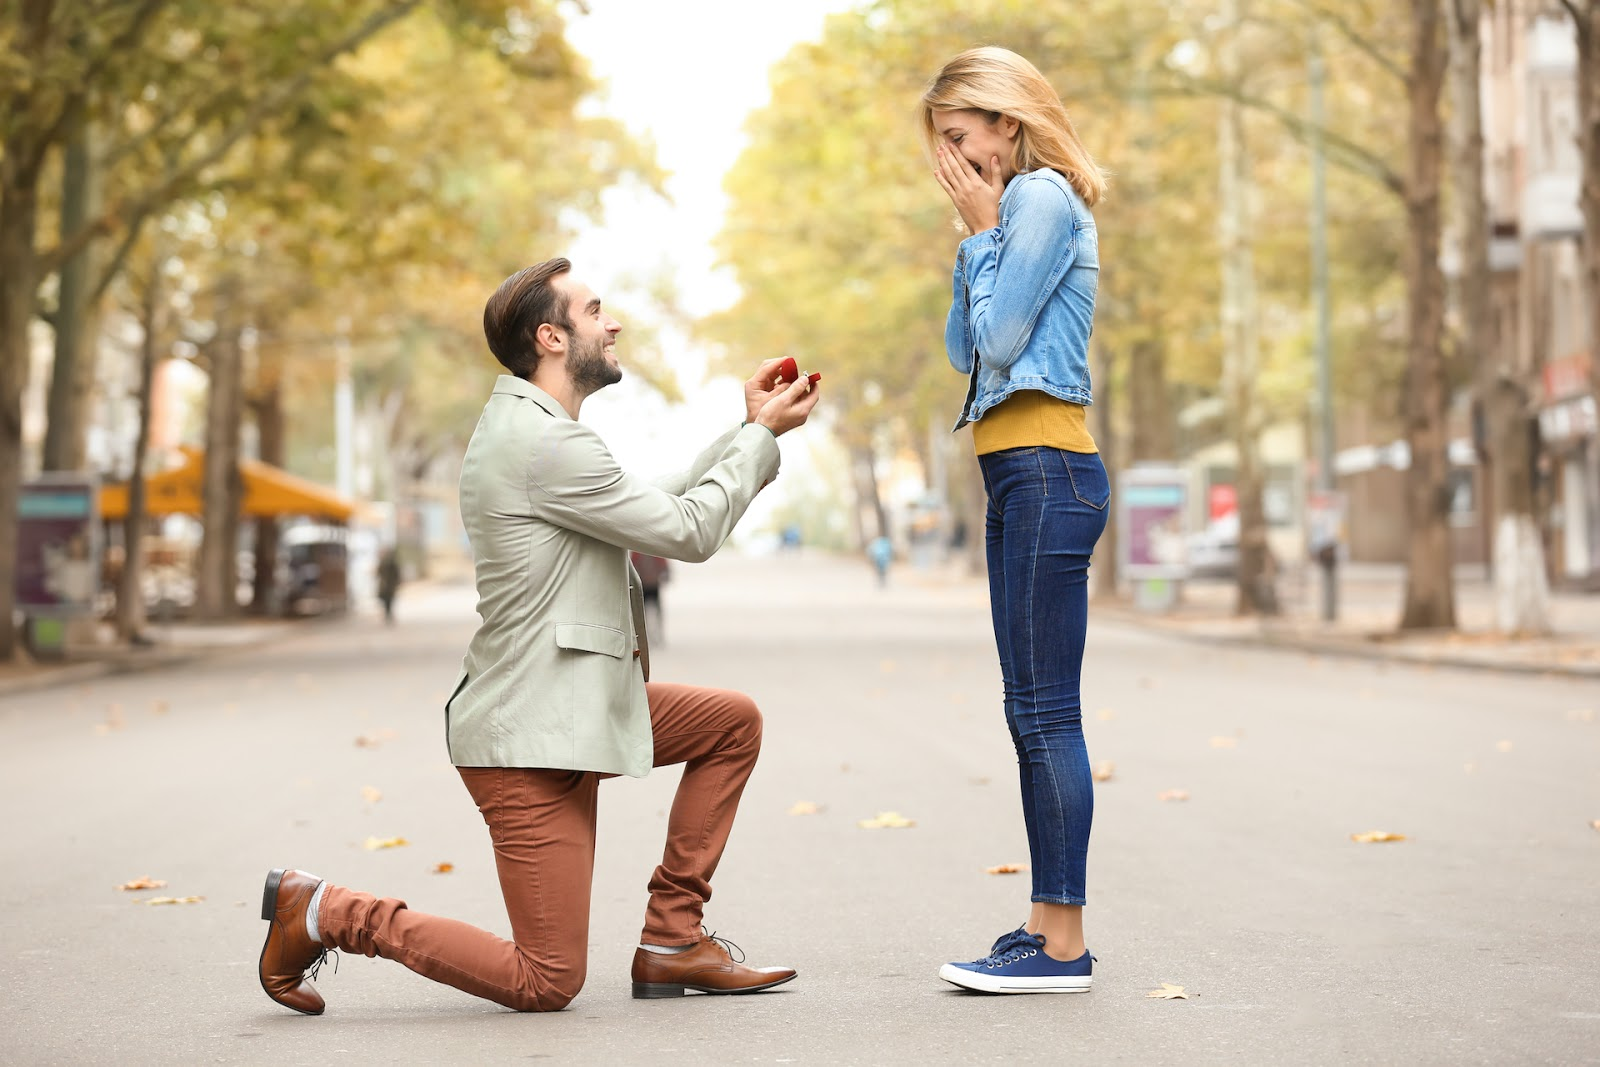 Man proposing to woman in a street